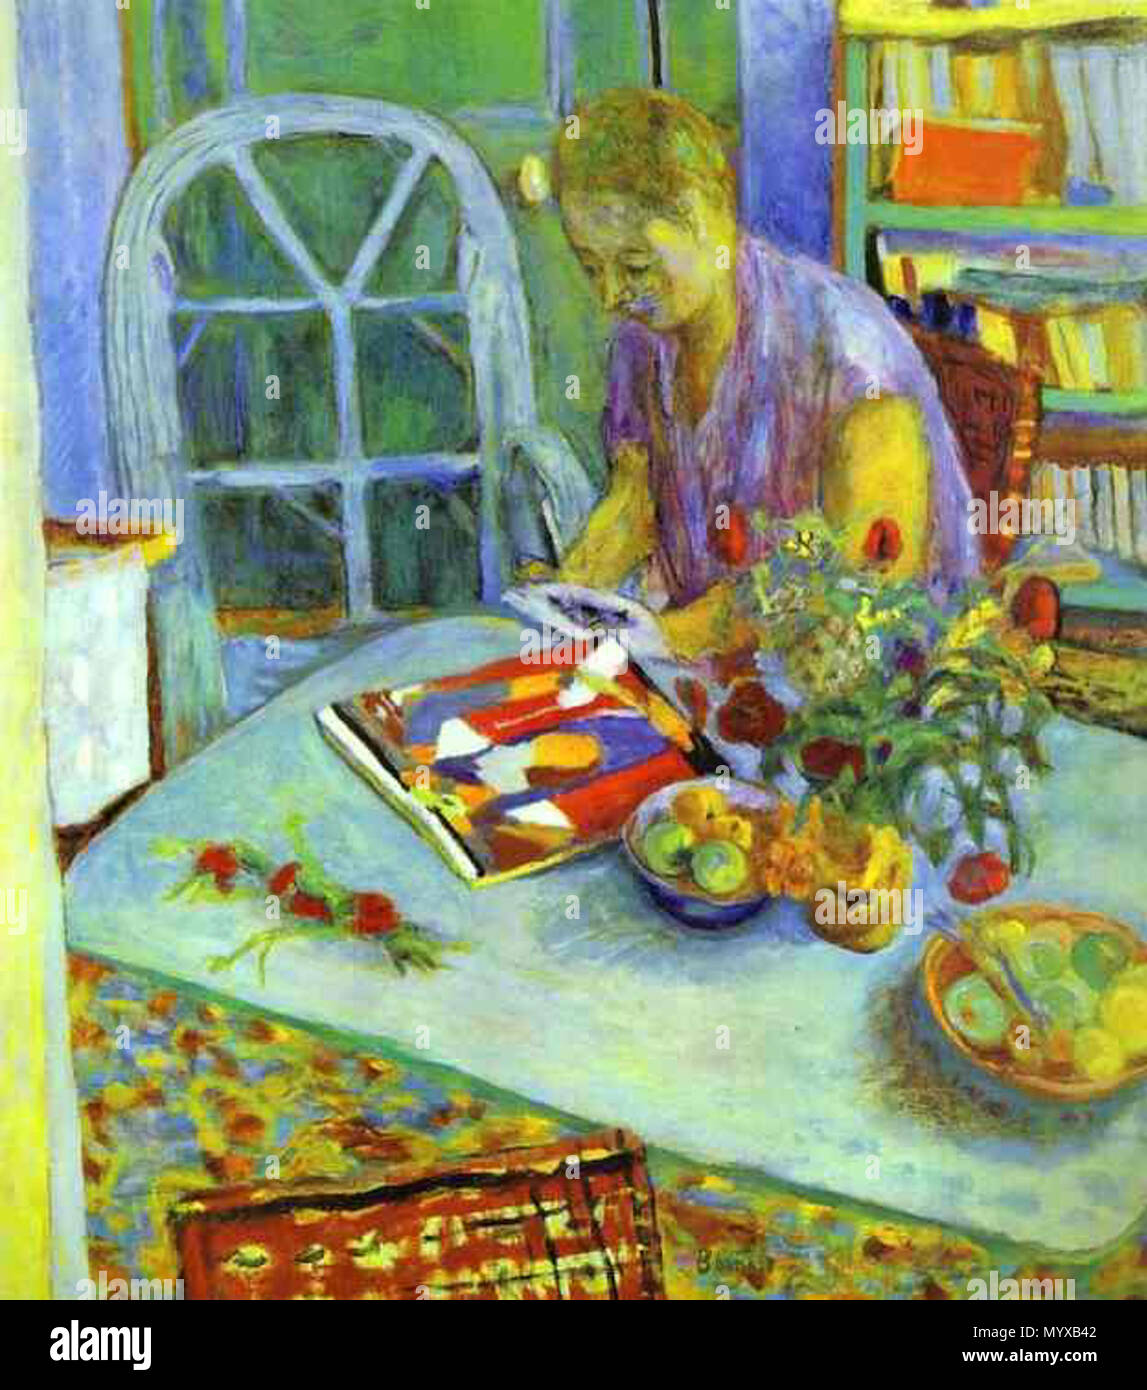 .  English: Painting by Pierre Bonnard  . After 1923.    Pierre Bonnard (1867–1947)   Alternative names P'er Bonnar; Pierre Eugène Frédéric Bonnard; Pierre Eugene Frederic Bonnard; p. bonnard; bonnard p.; Bonnard  Description French painter, sculptor, engraver and graphic artist  Date of birth/death 3 October 1867 23 January 1947  Location of birth/death Fontenay-aux-Roses Le Cannet  Work location France, United States of America, North Africa  Authority control  : Q26408 VIAF:?66499977 ISNI:?0000 0001 0910 3856 ULAN:?500115555 LCCN:?n79040127 NLA:?35020171 WorldCat 6 A-woman-in-a-room-192 - Stock Image